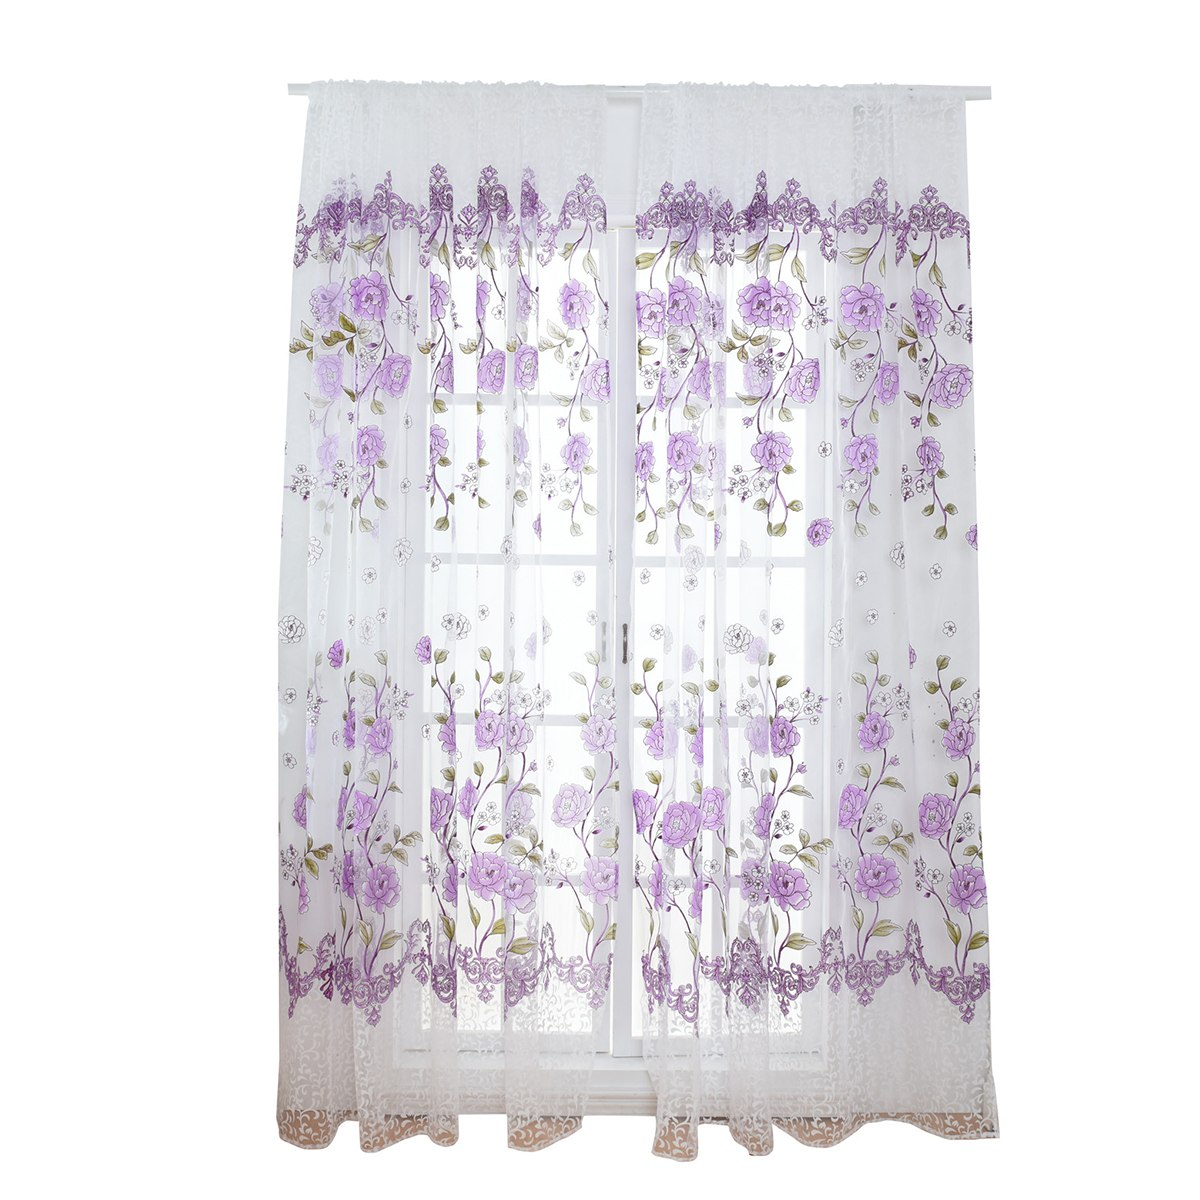 Costbuys  Sheer Floral Curtains Home Decor Window Treatments Modern Curtain Pour Le Salon Window - Purple